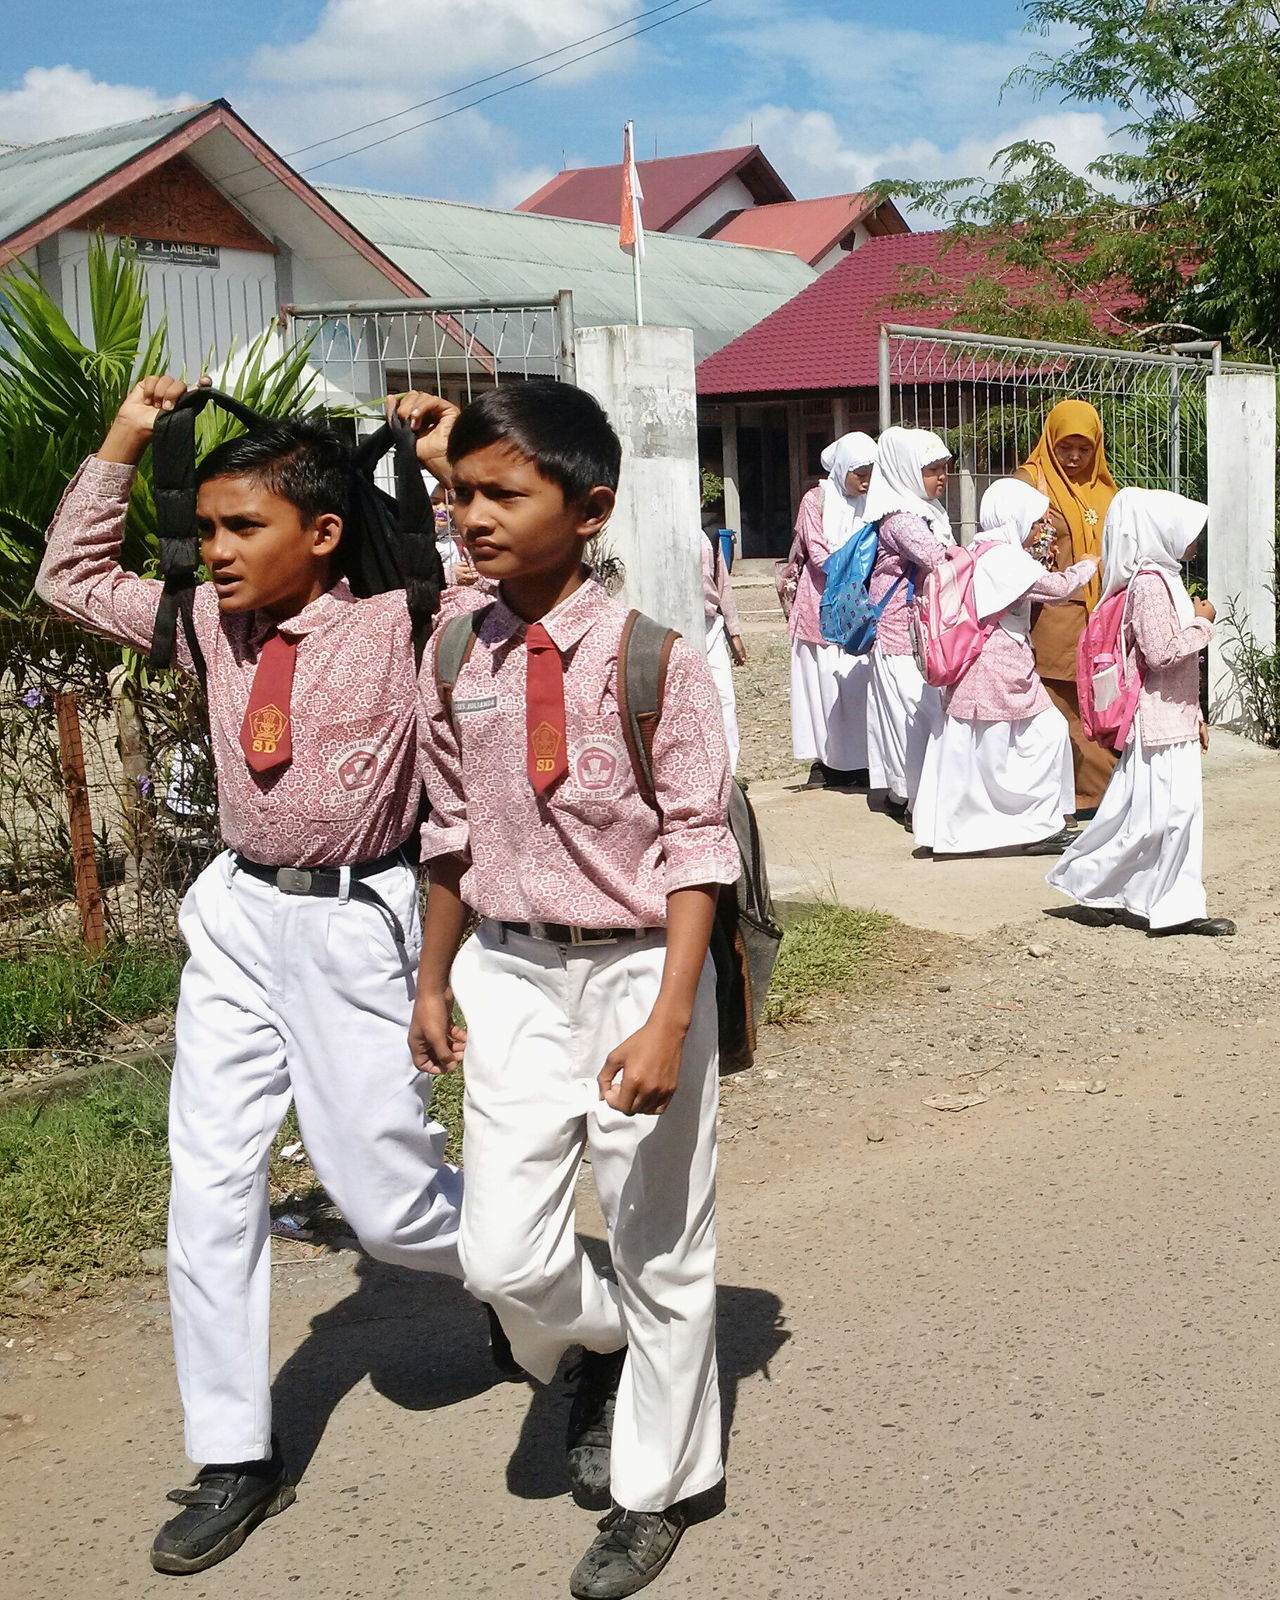 School Uniforms Around The World School Uniform My Student Life EyeEm Indonesia EyeEm Gallery Hello World Unity EyeEm Best Shots Eyeem Aceh School School Life  Eye4photography  Taking Photos Showcase: January Sand Sunlight Bright_and_bold Bright Asian Children